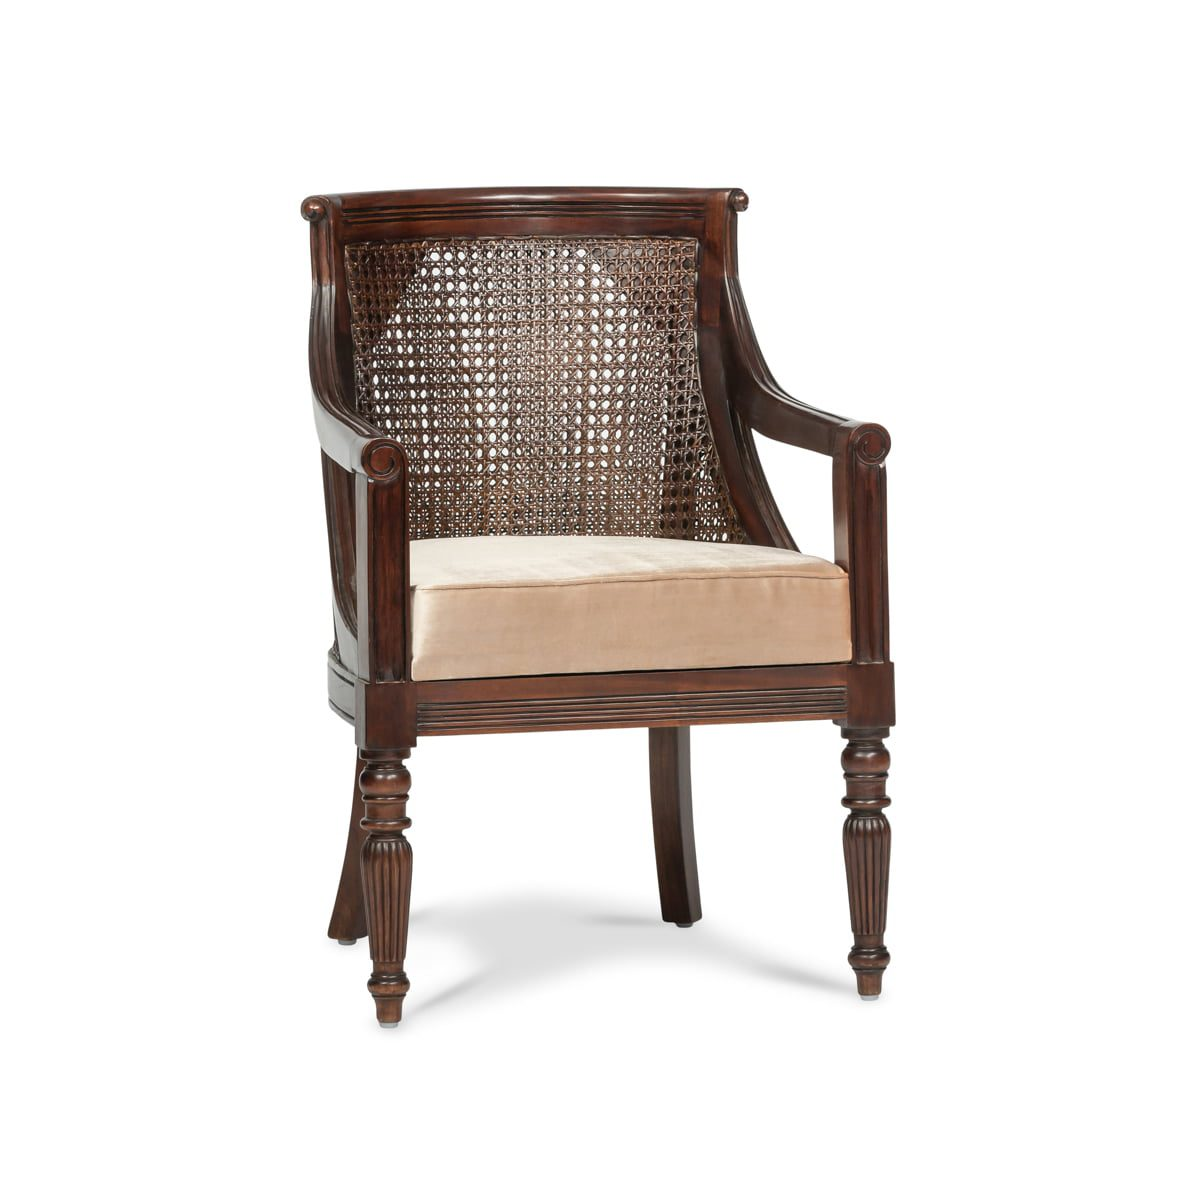 French Cane Barrel Chair